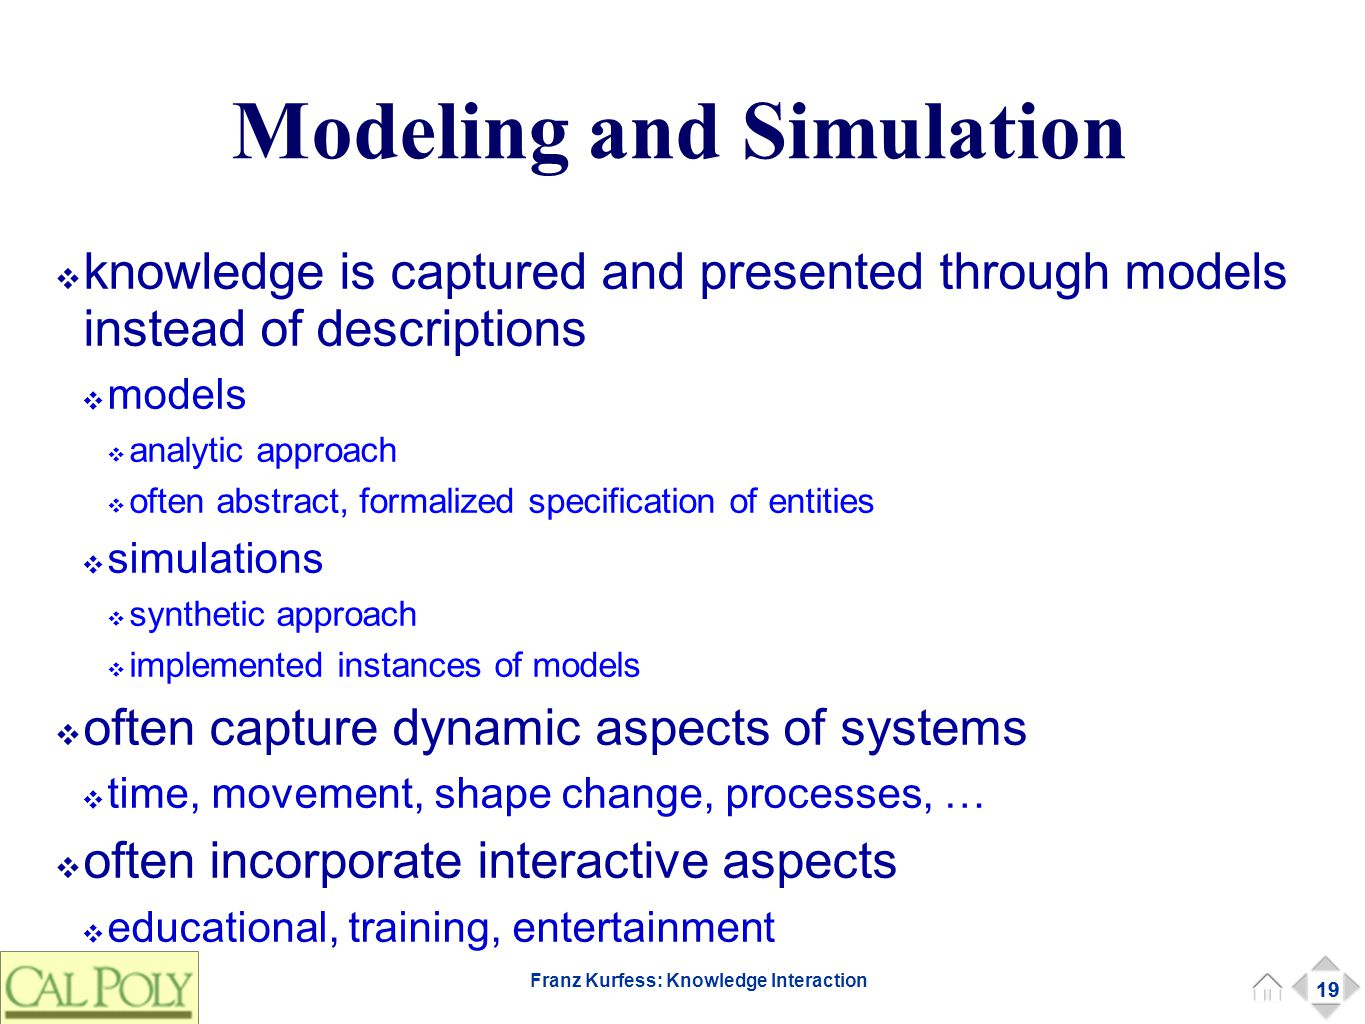 19 Franz Kurfess: Knowledge Interaction Modeling and Simulation ❖ knowledge is captured and presented through models instead of descriptions ❖ models ❖ analytic approach ❖ often abstract, formalized specification of entities ❖ simulations ❖ synthetic approach ❖ implemented instances of models ❖ often capture dynamic aspects of systems ❖ time, movement, shape change, processes, … ❖ often incorporate interactive aspects ❖ educational, training, entertainment 19